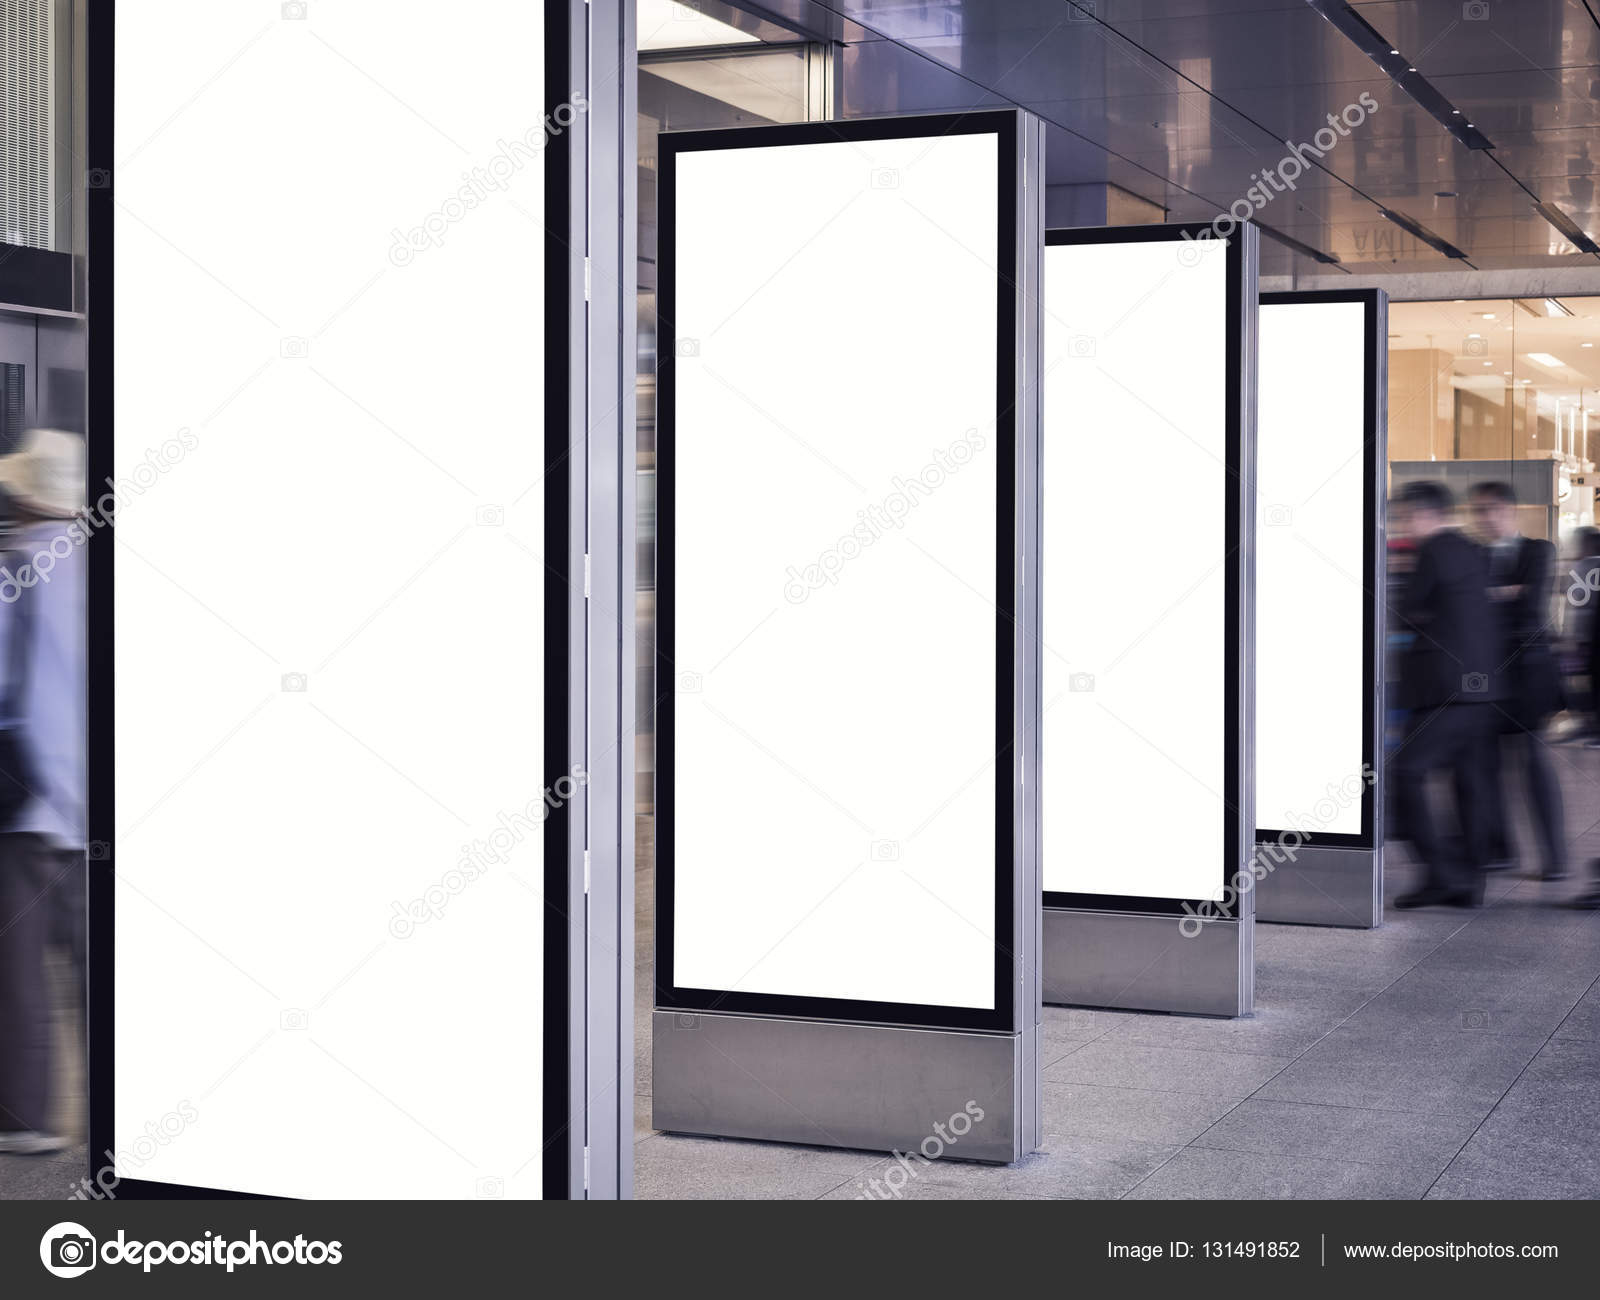 Download Free Mock Up Exhibition Stand : Blank mock up light box set template vertical sign stand